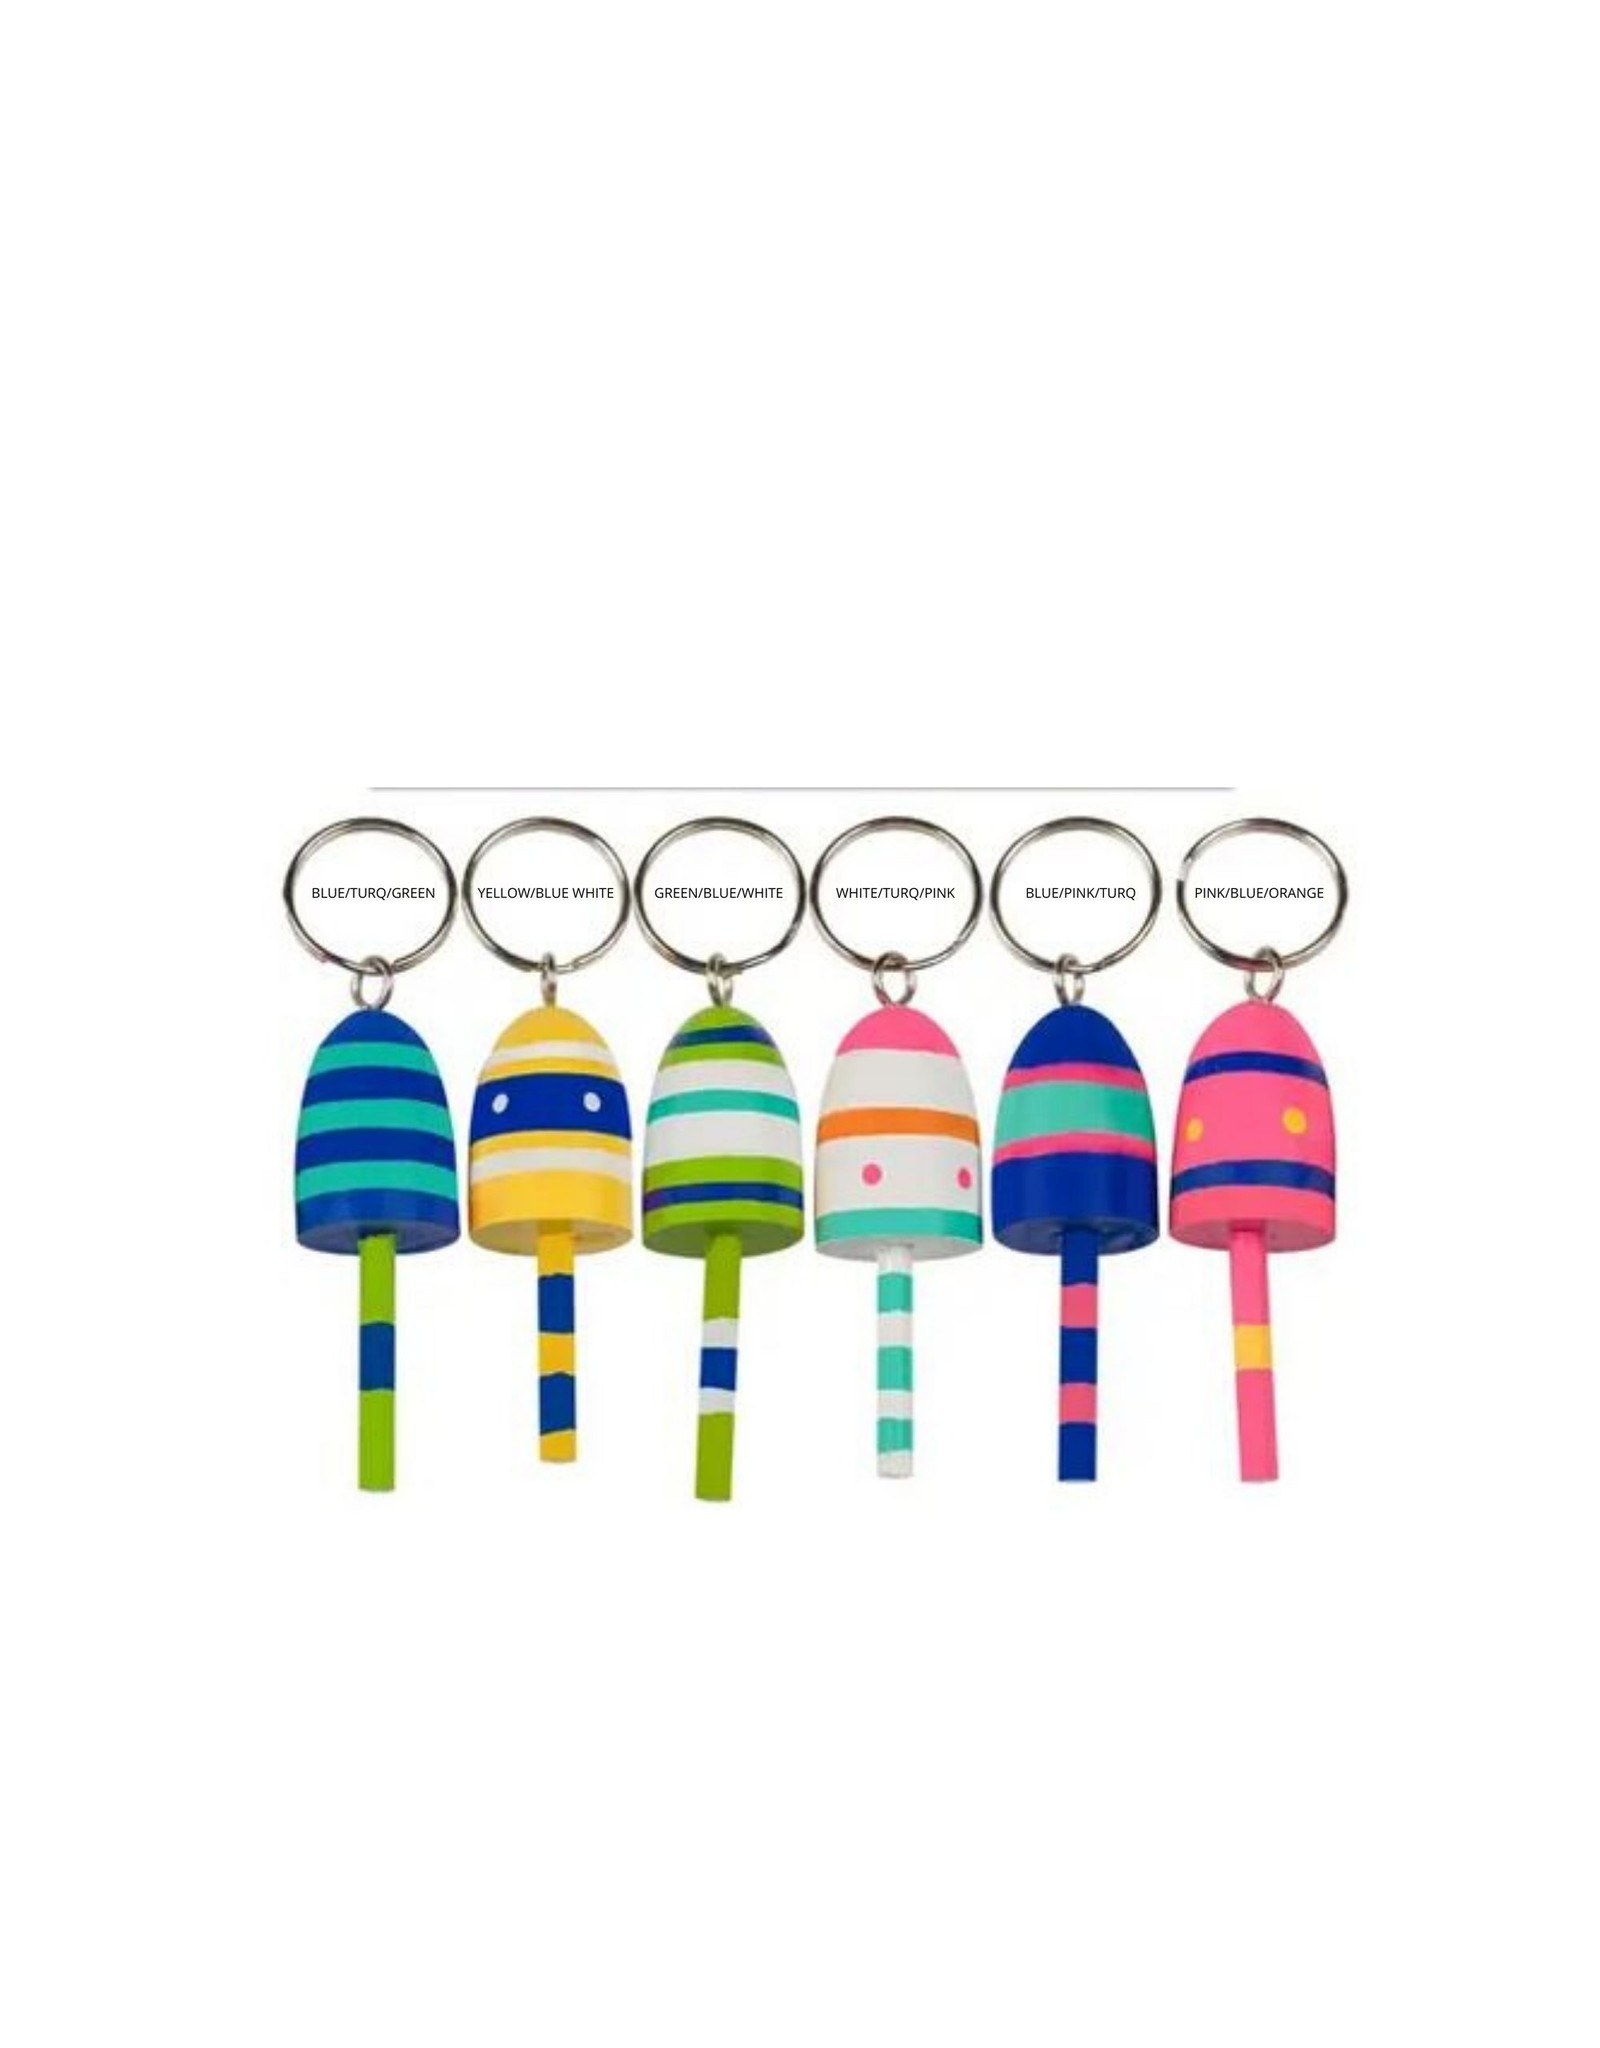 PARADE STREET PRODUCTS BUOY KEY CHAIN